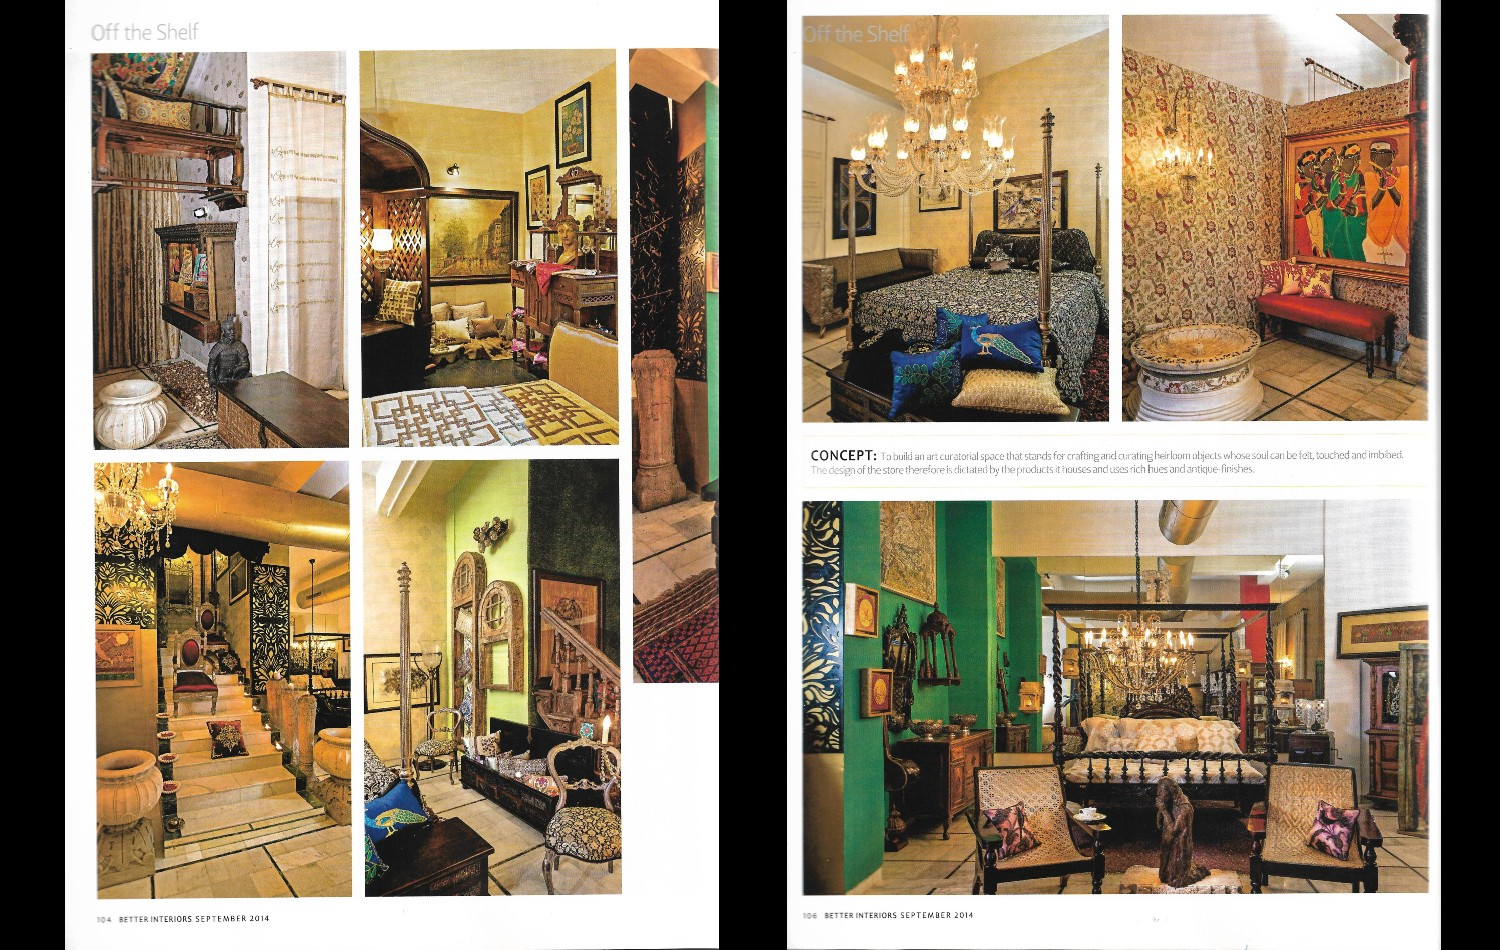 20140900 Better Interiors Sep2014 - 1 - HIGH